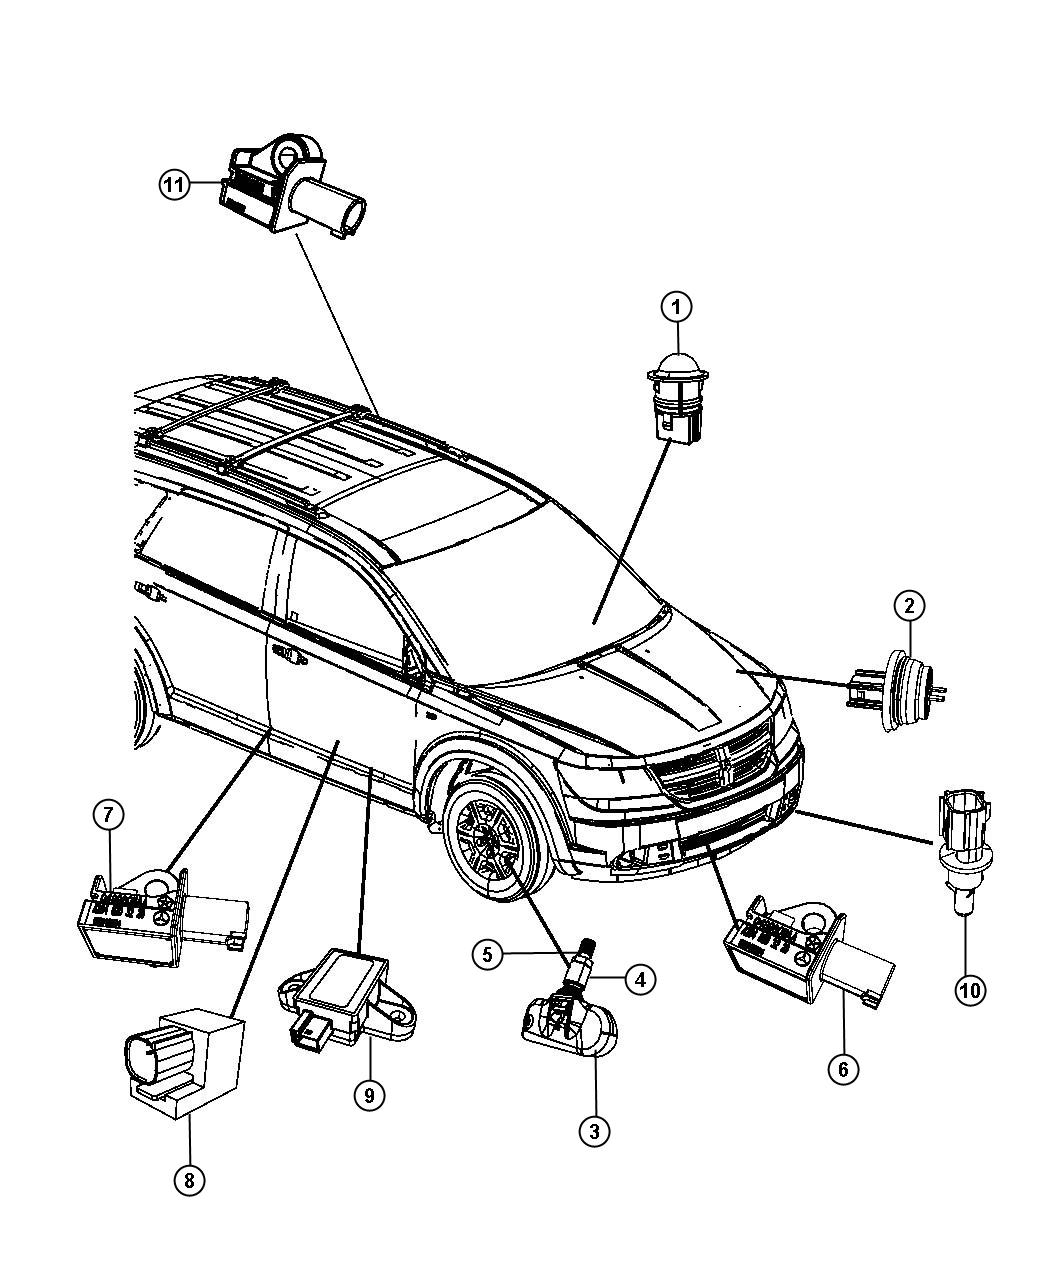 Dodge Grand Caravan Air Bag Sensor Location on 2013 ford fusion wiring diagram